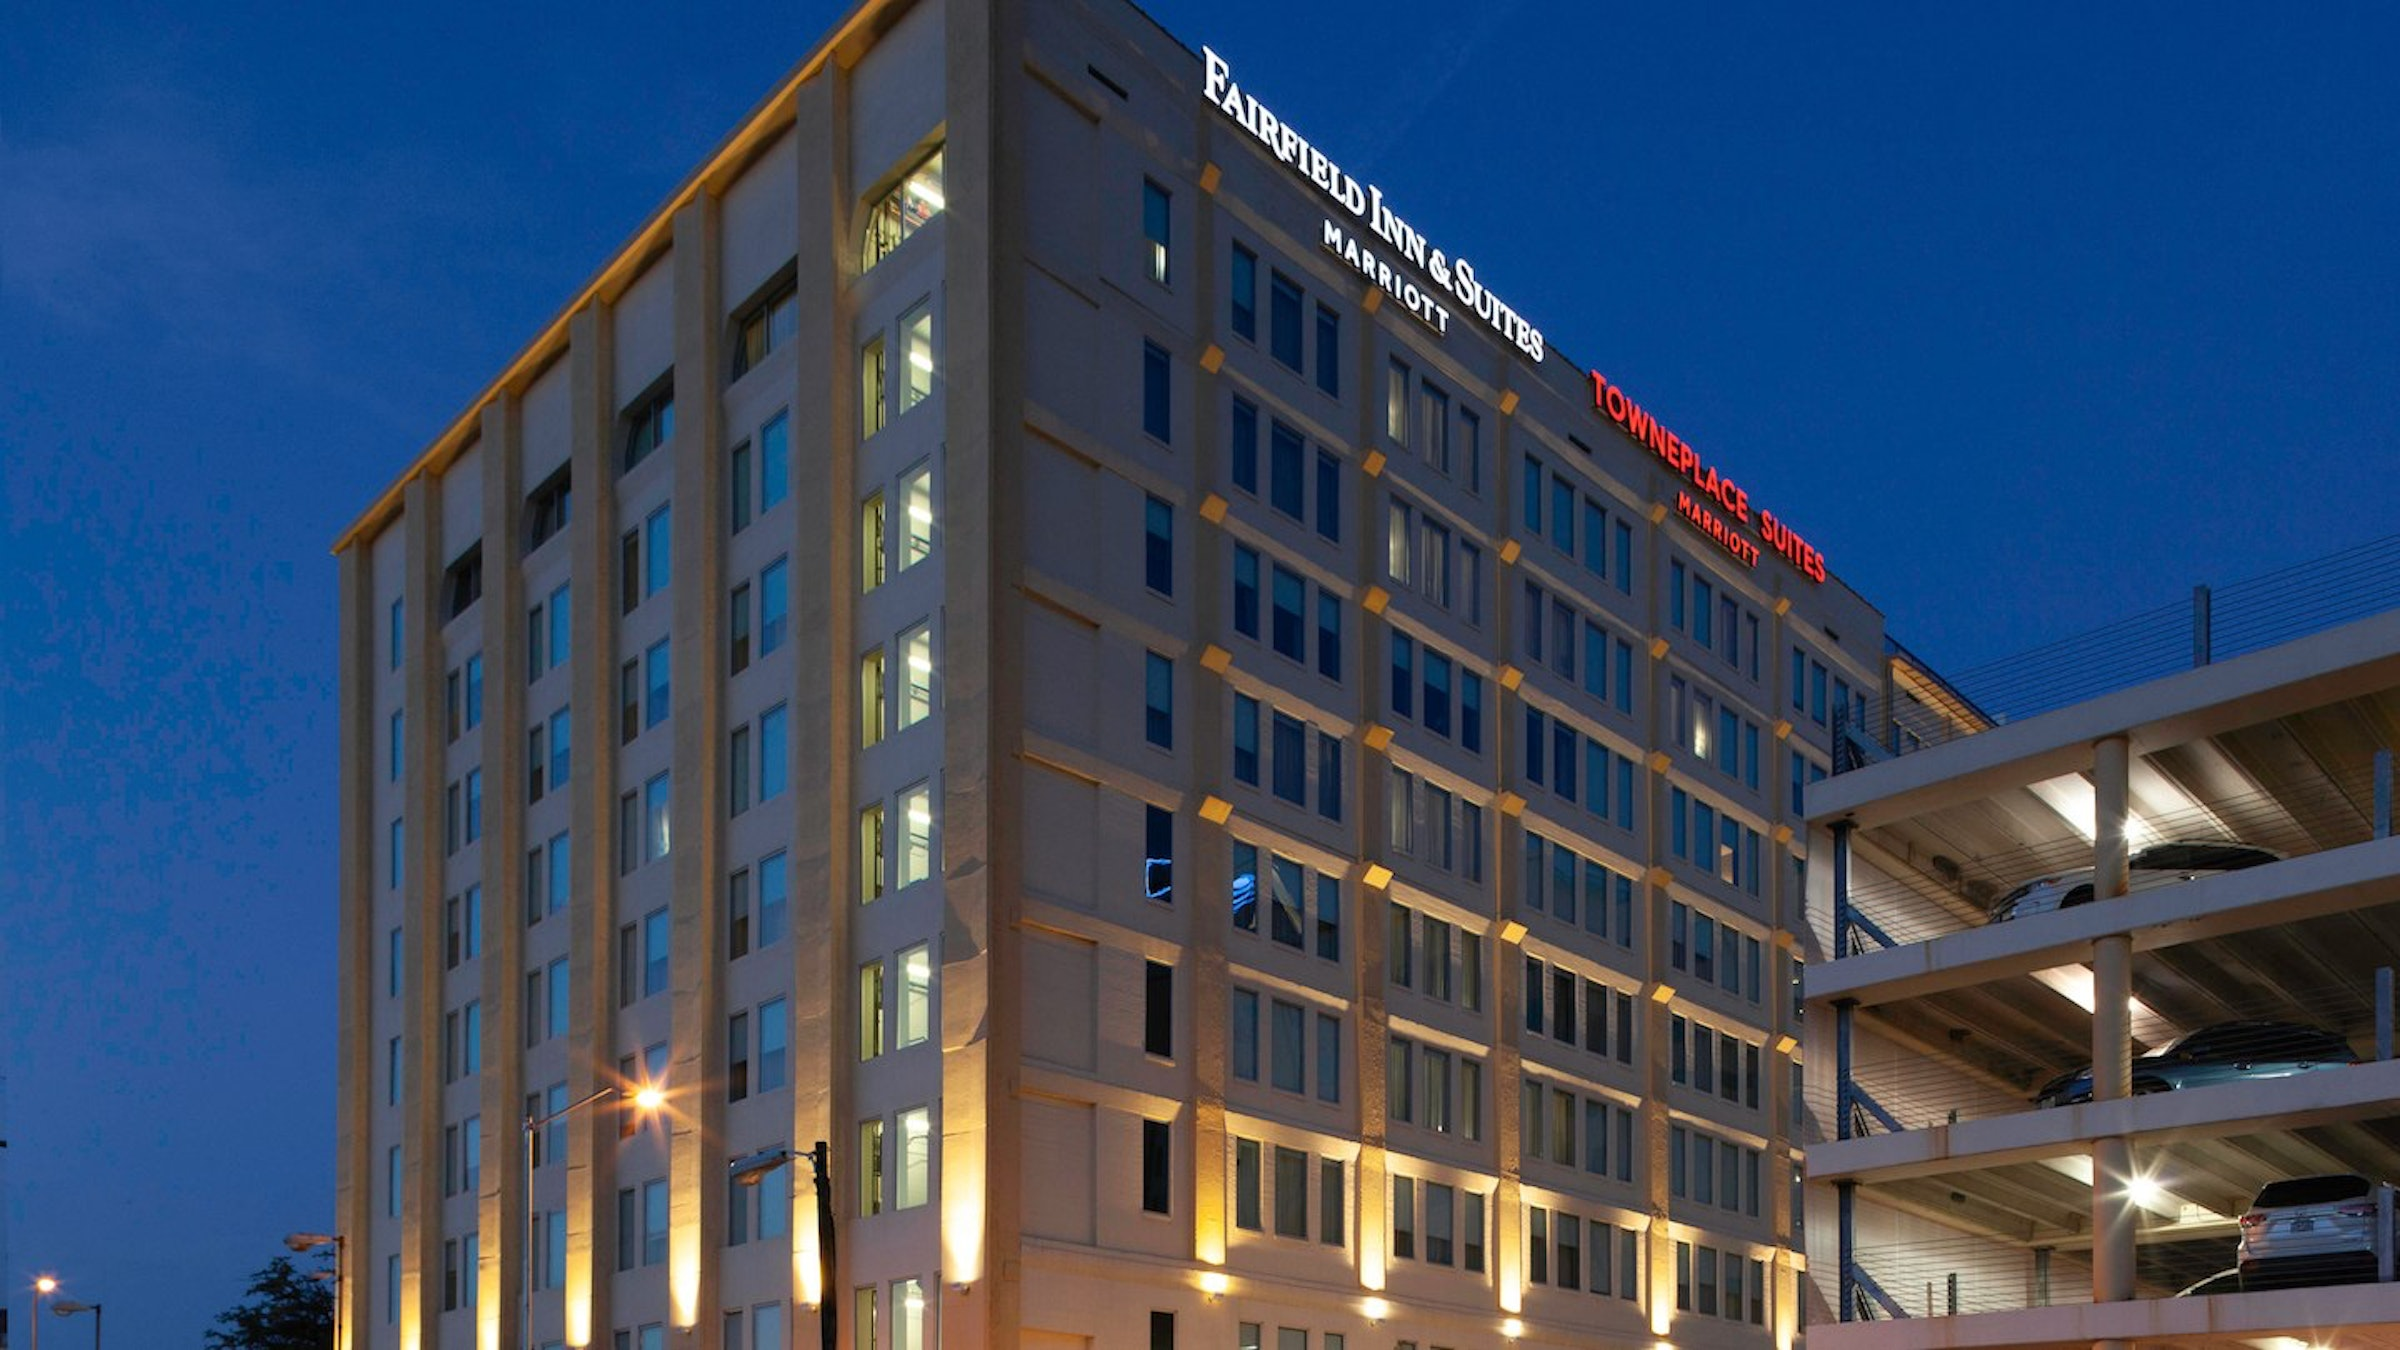 TownePlace Suites by Marriott Dallas Downtown in Beyond Dallas